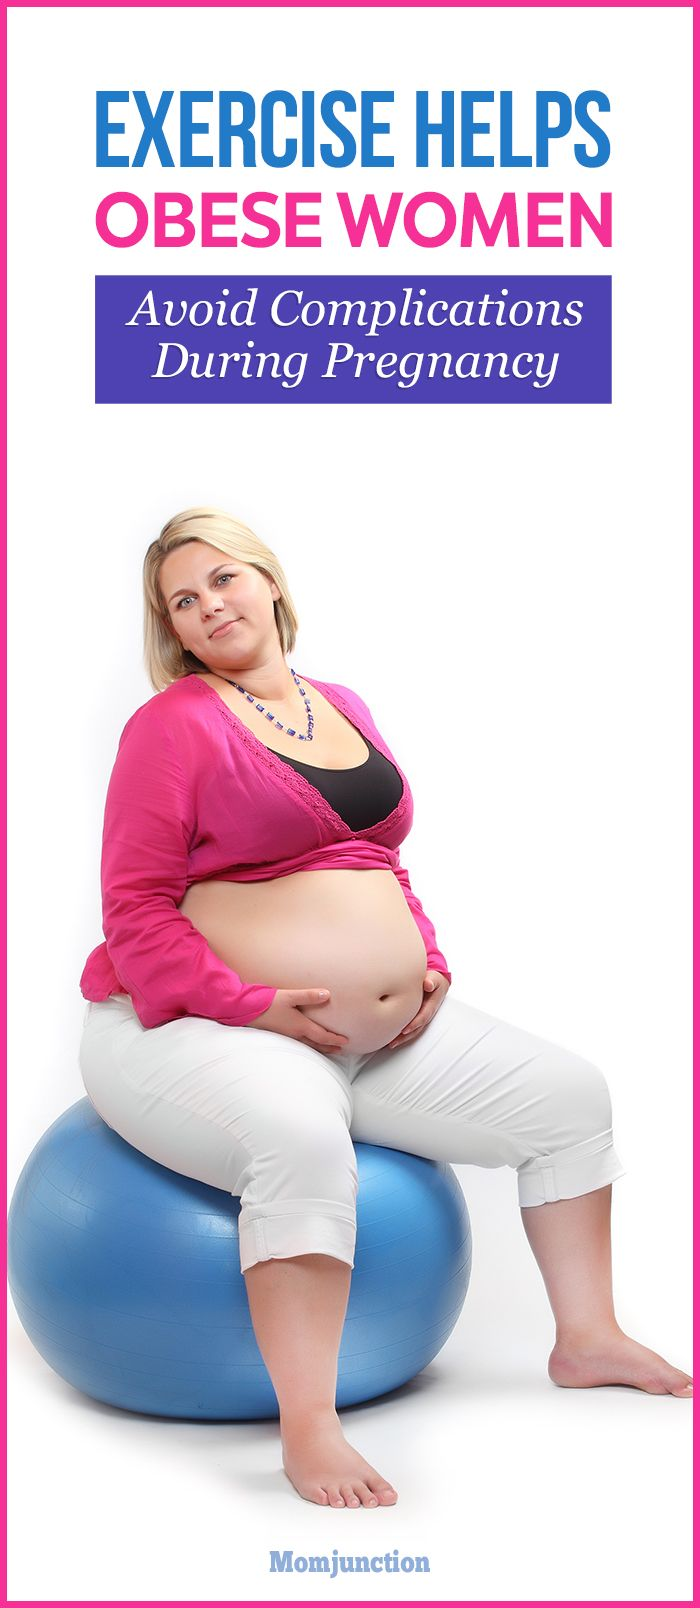 Exercise Can Help Obese Women Avoid Complications During Pregnancy